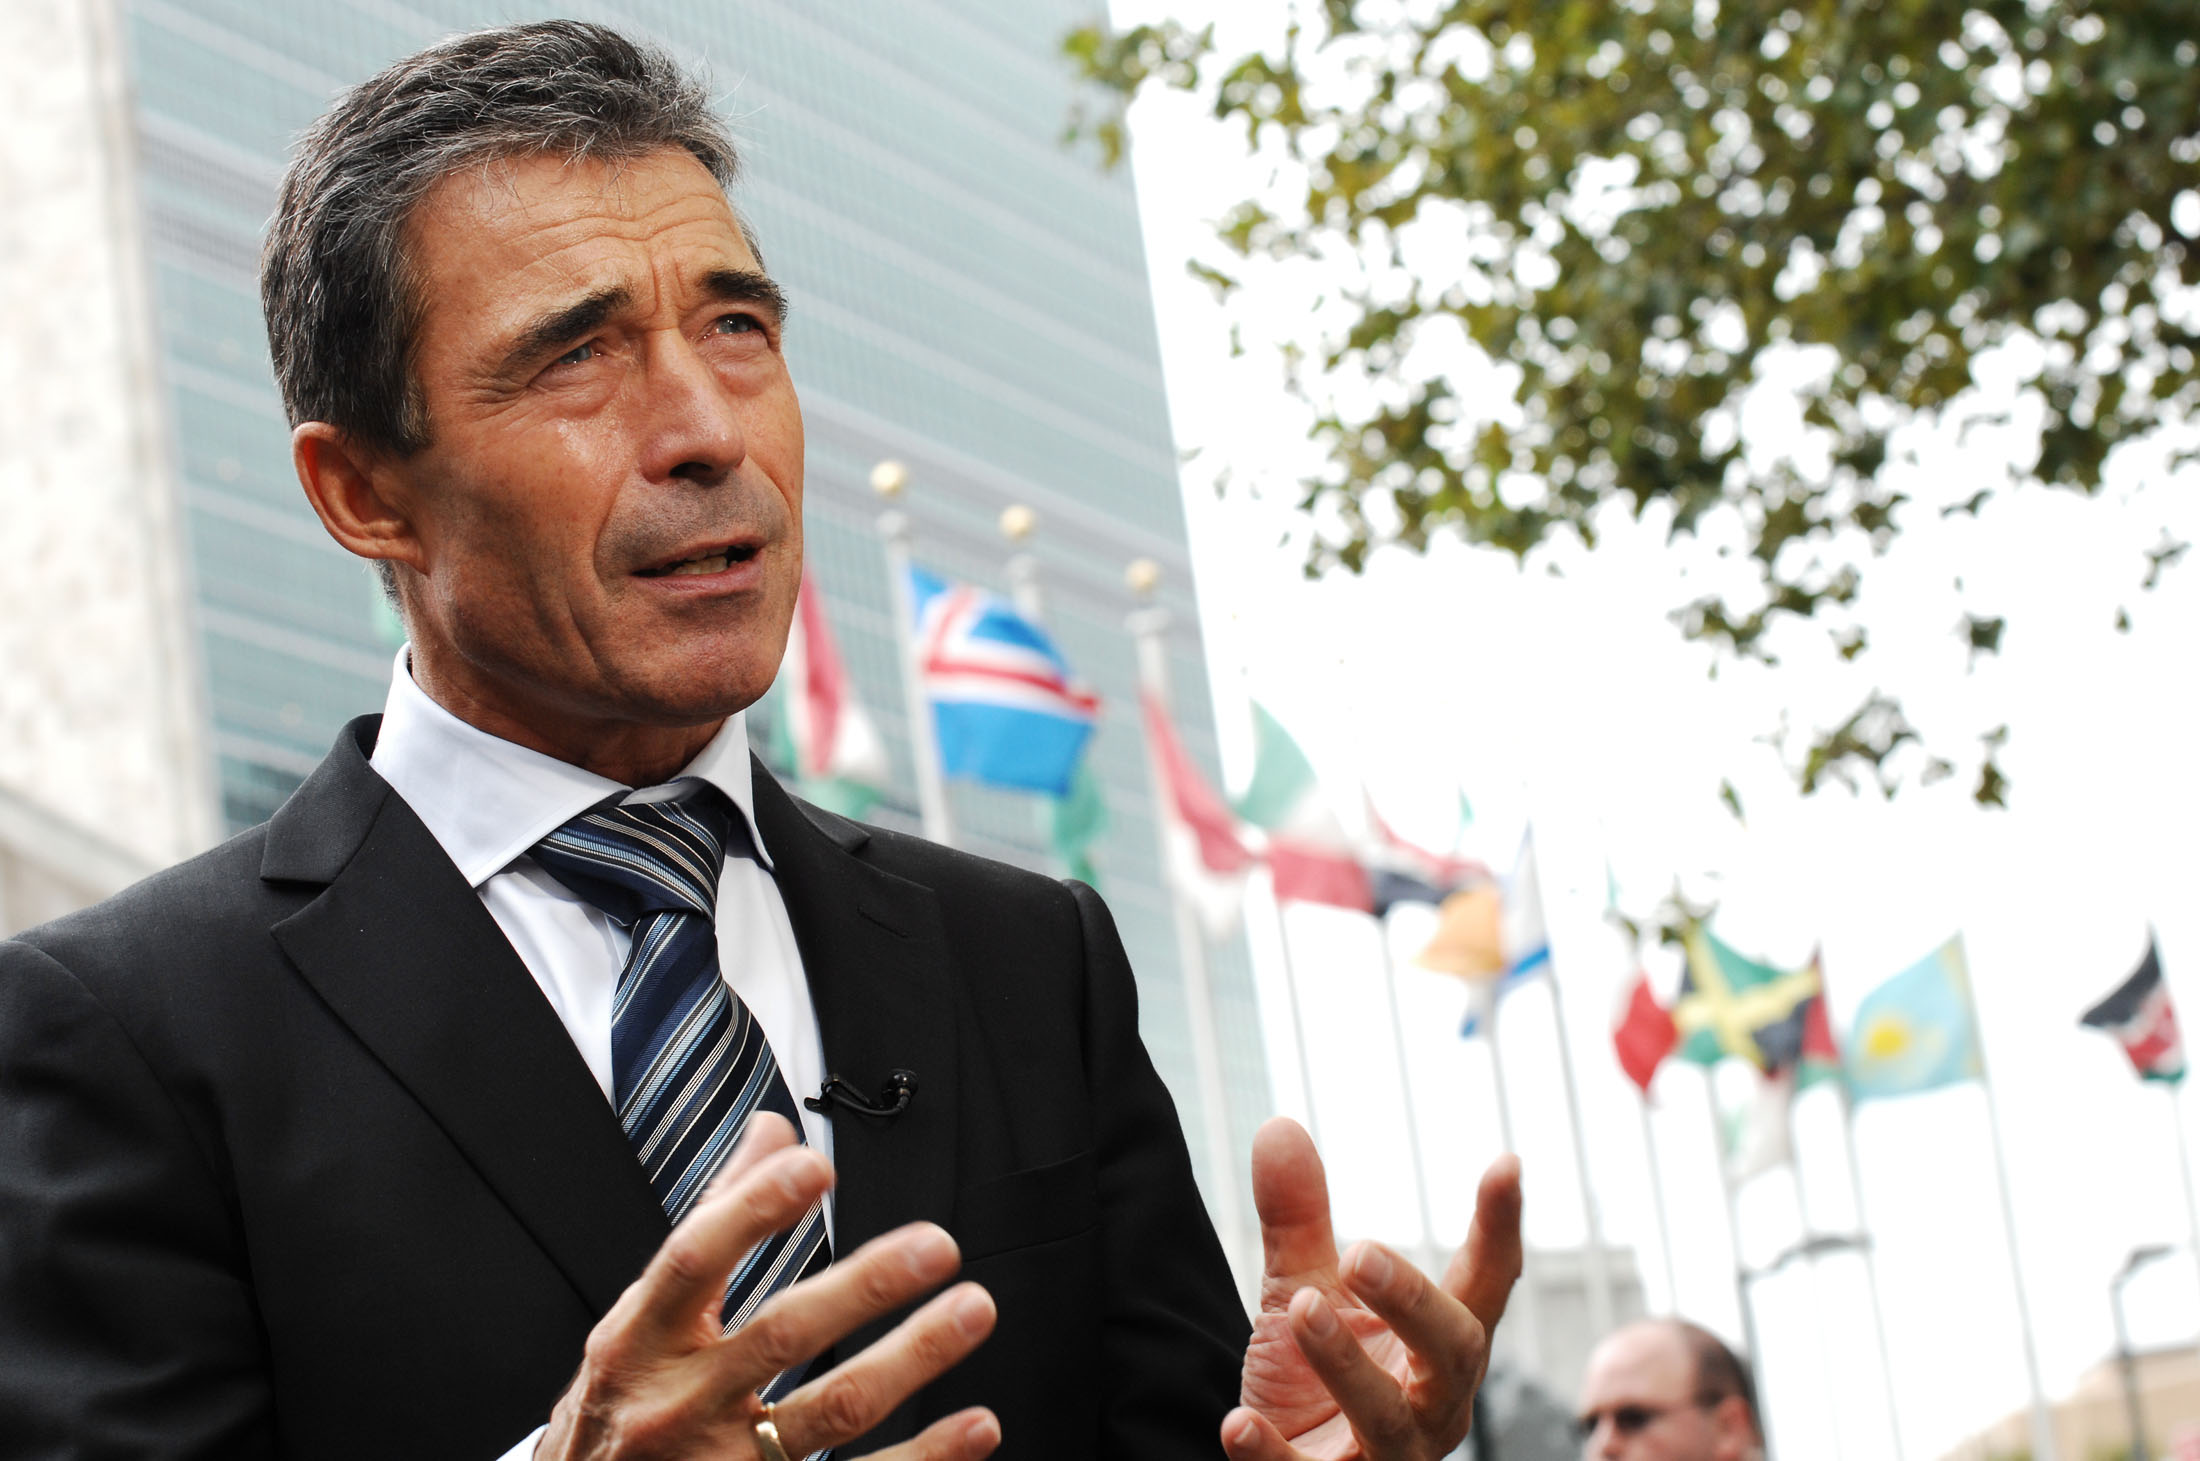 Secretary General Anders Fogh Rasmussen at the UN, Sept. 19, 2011